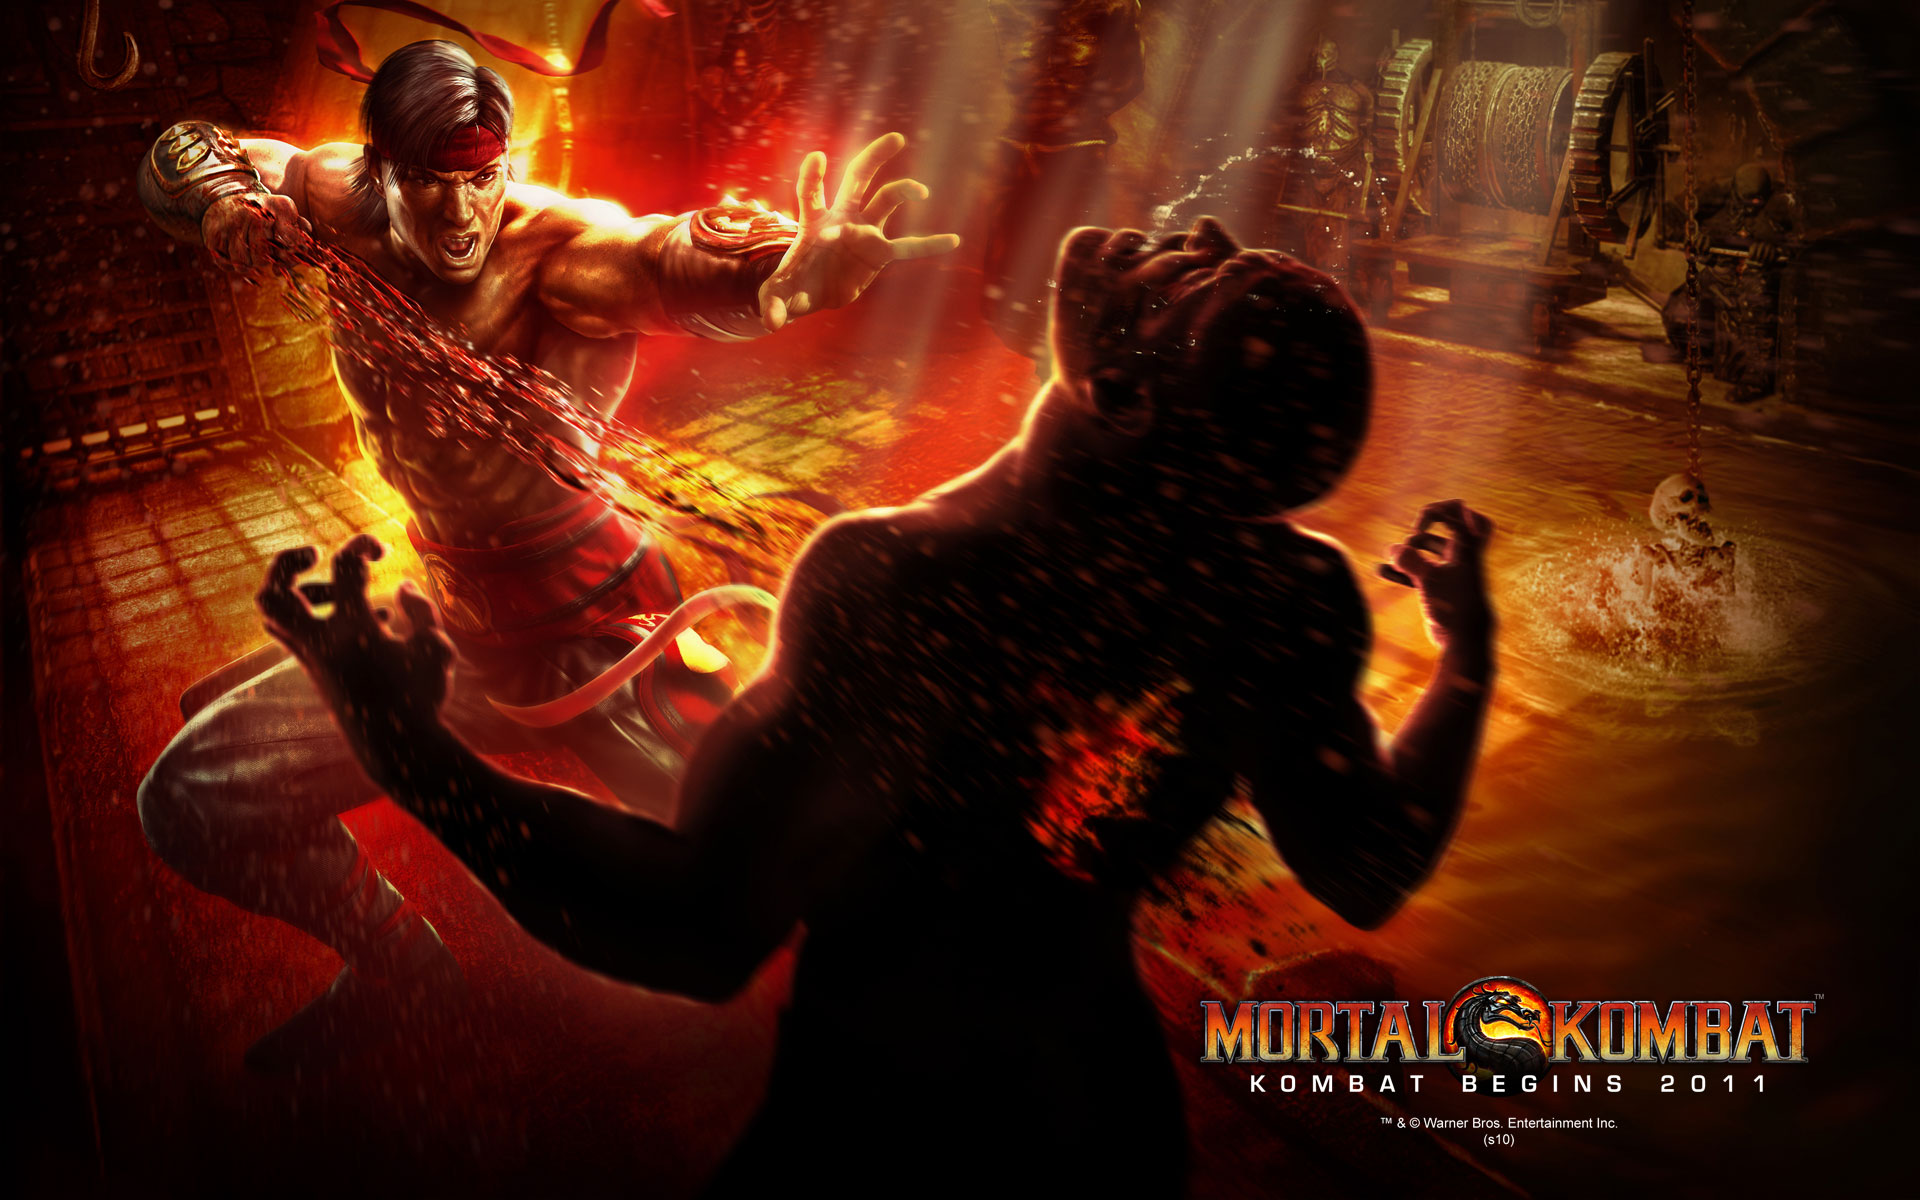 Mortal Kombat 9 (2011): Cheats, Unlockables, Fatalites